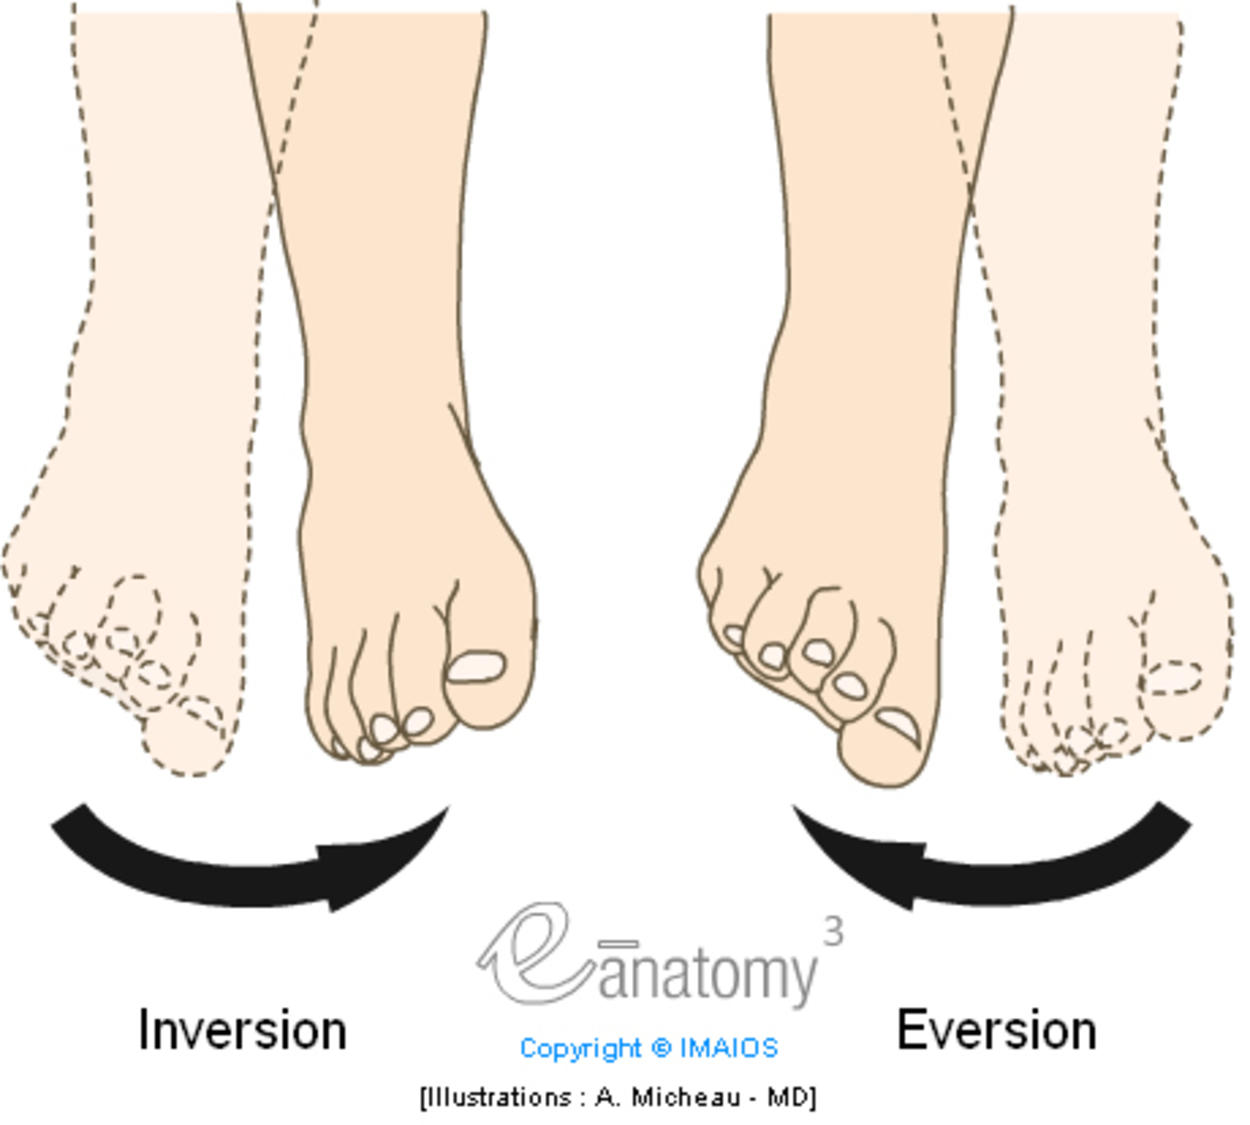 Inversion/Eversion : Movements, Anatomy atlas, Medical illustrations